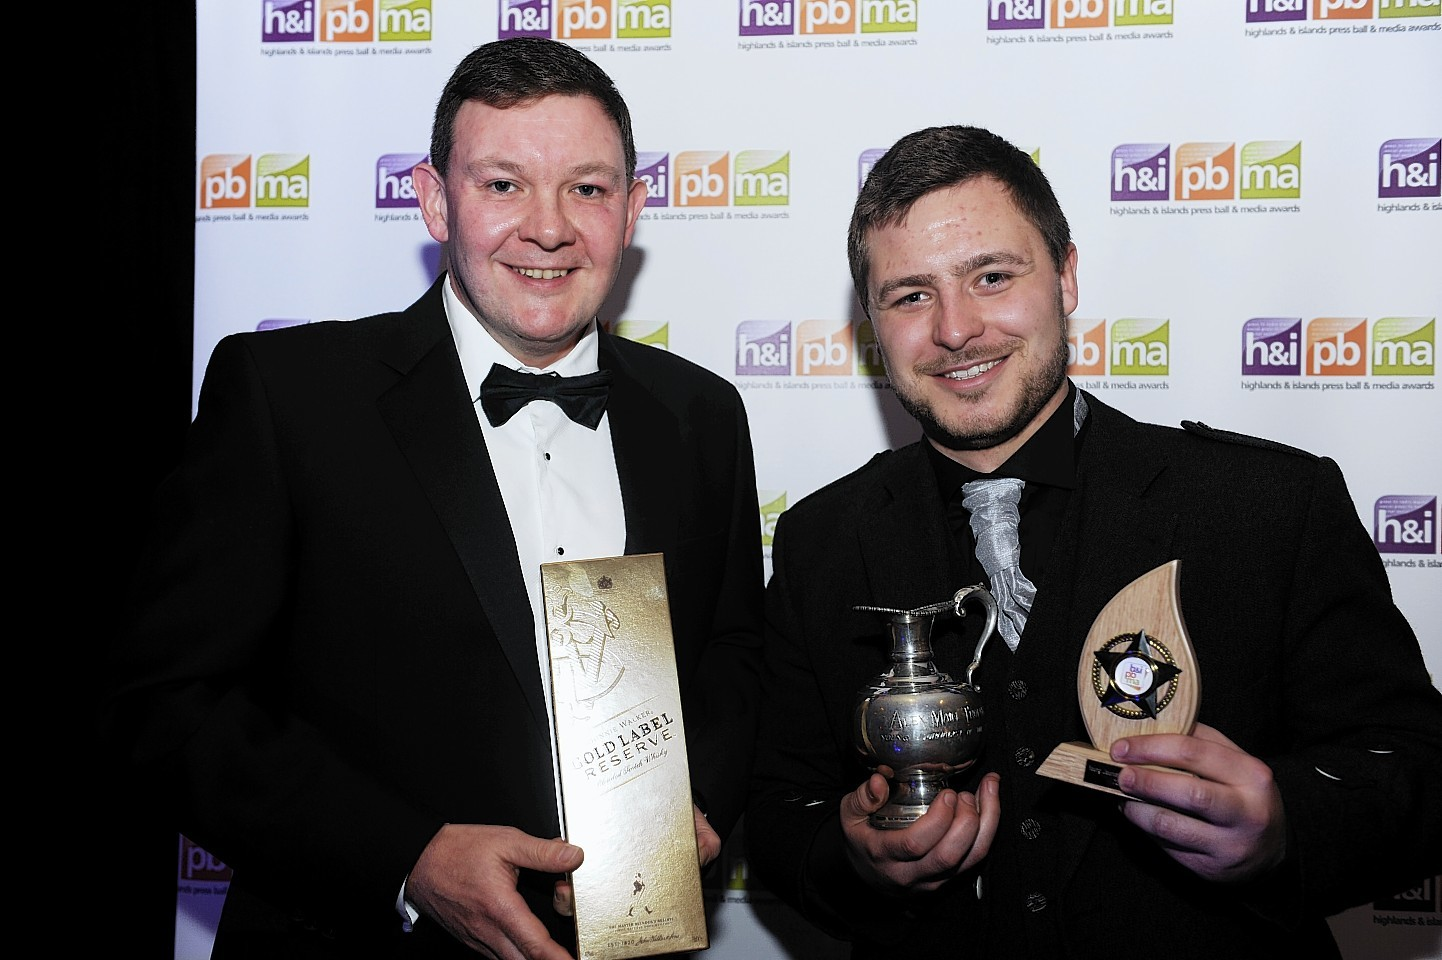 David Kerr won young journalist of the year at the awards